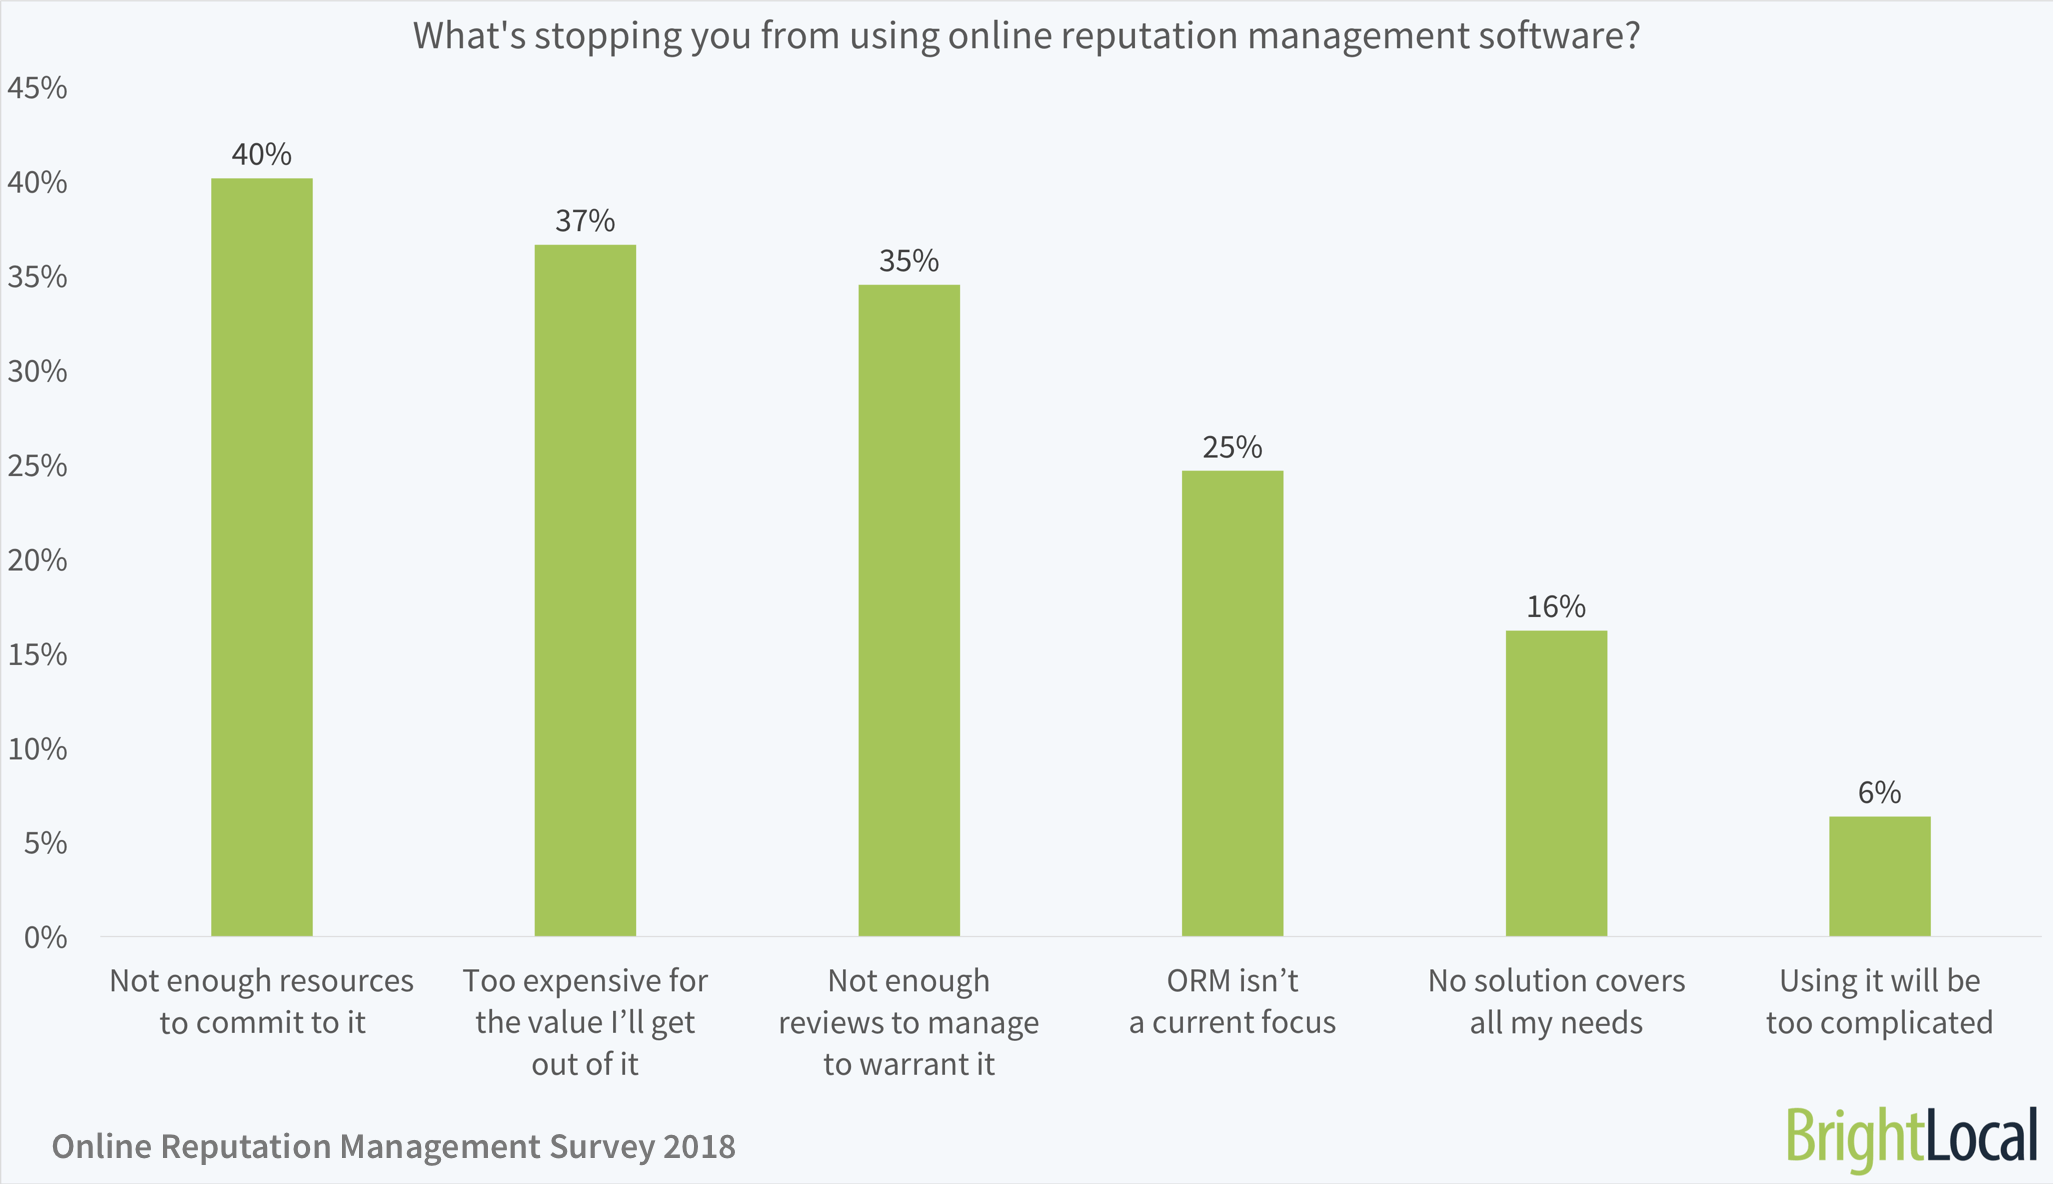 What's stopping you from using online reputation management software?